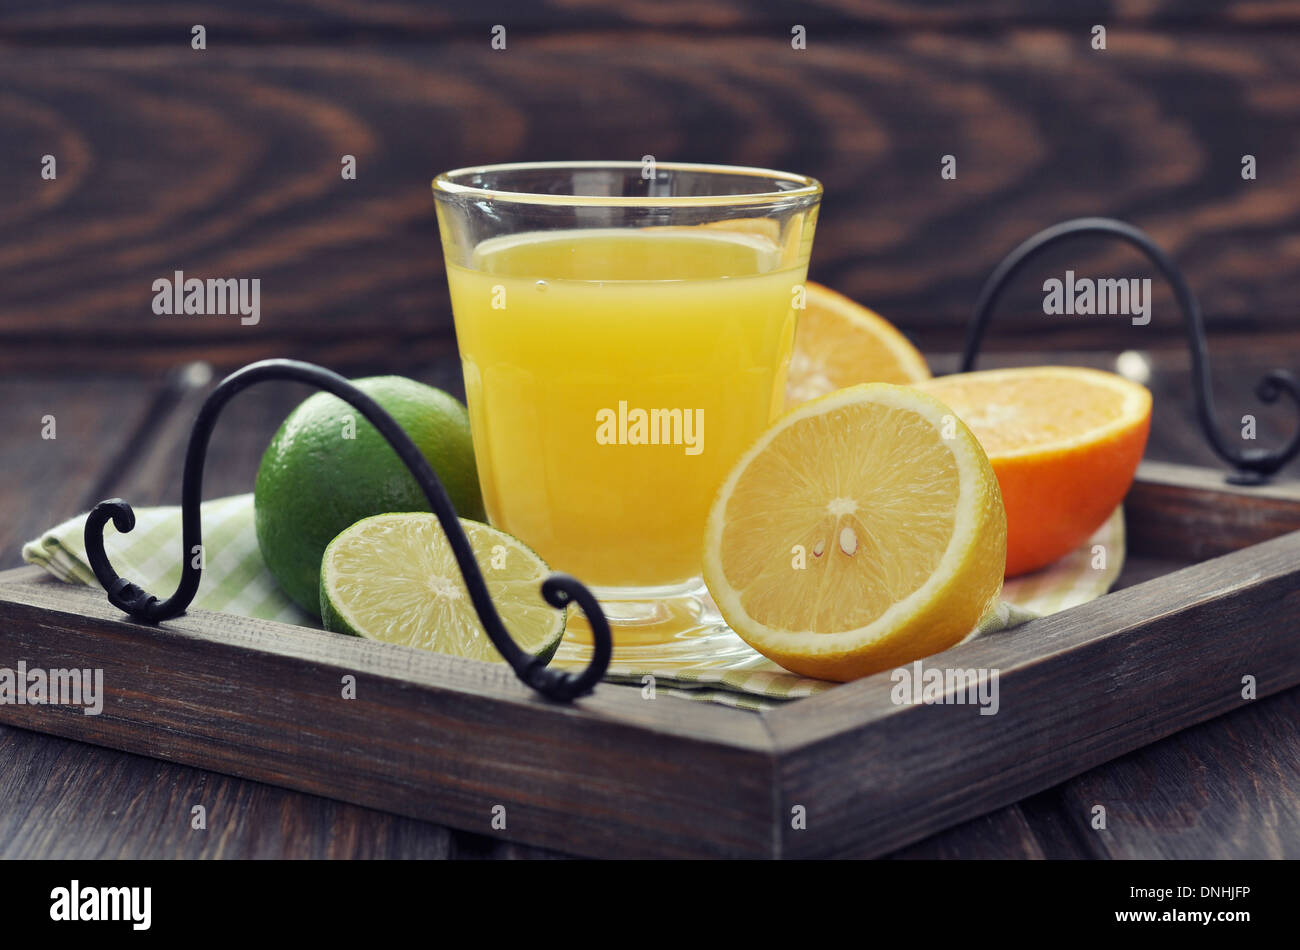 Citrus juice and fruits on vintage tray on wooden background - Stock Image